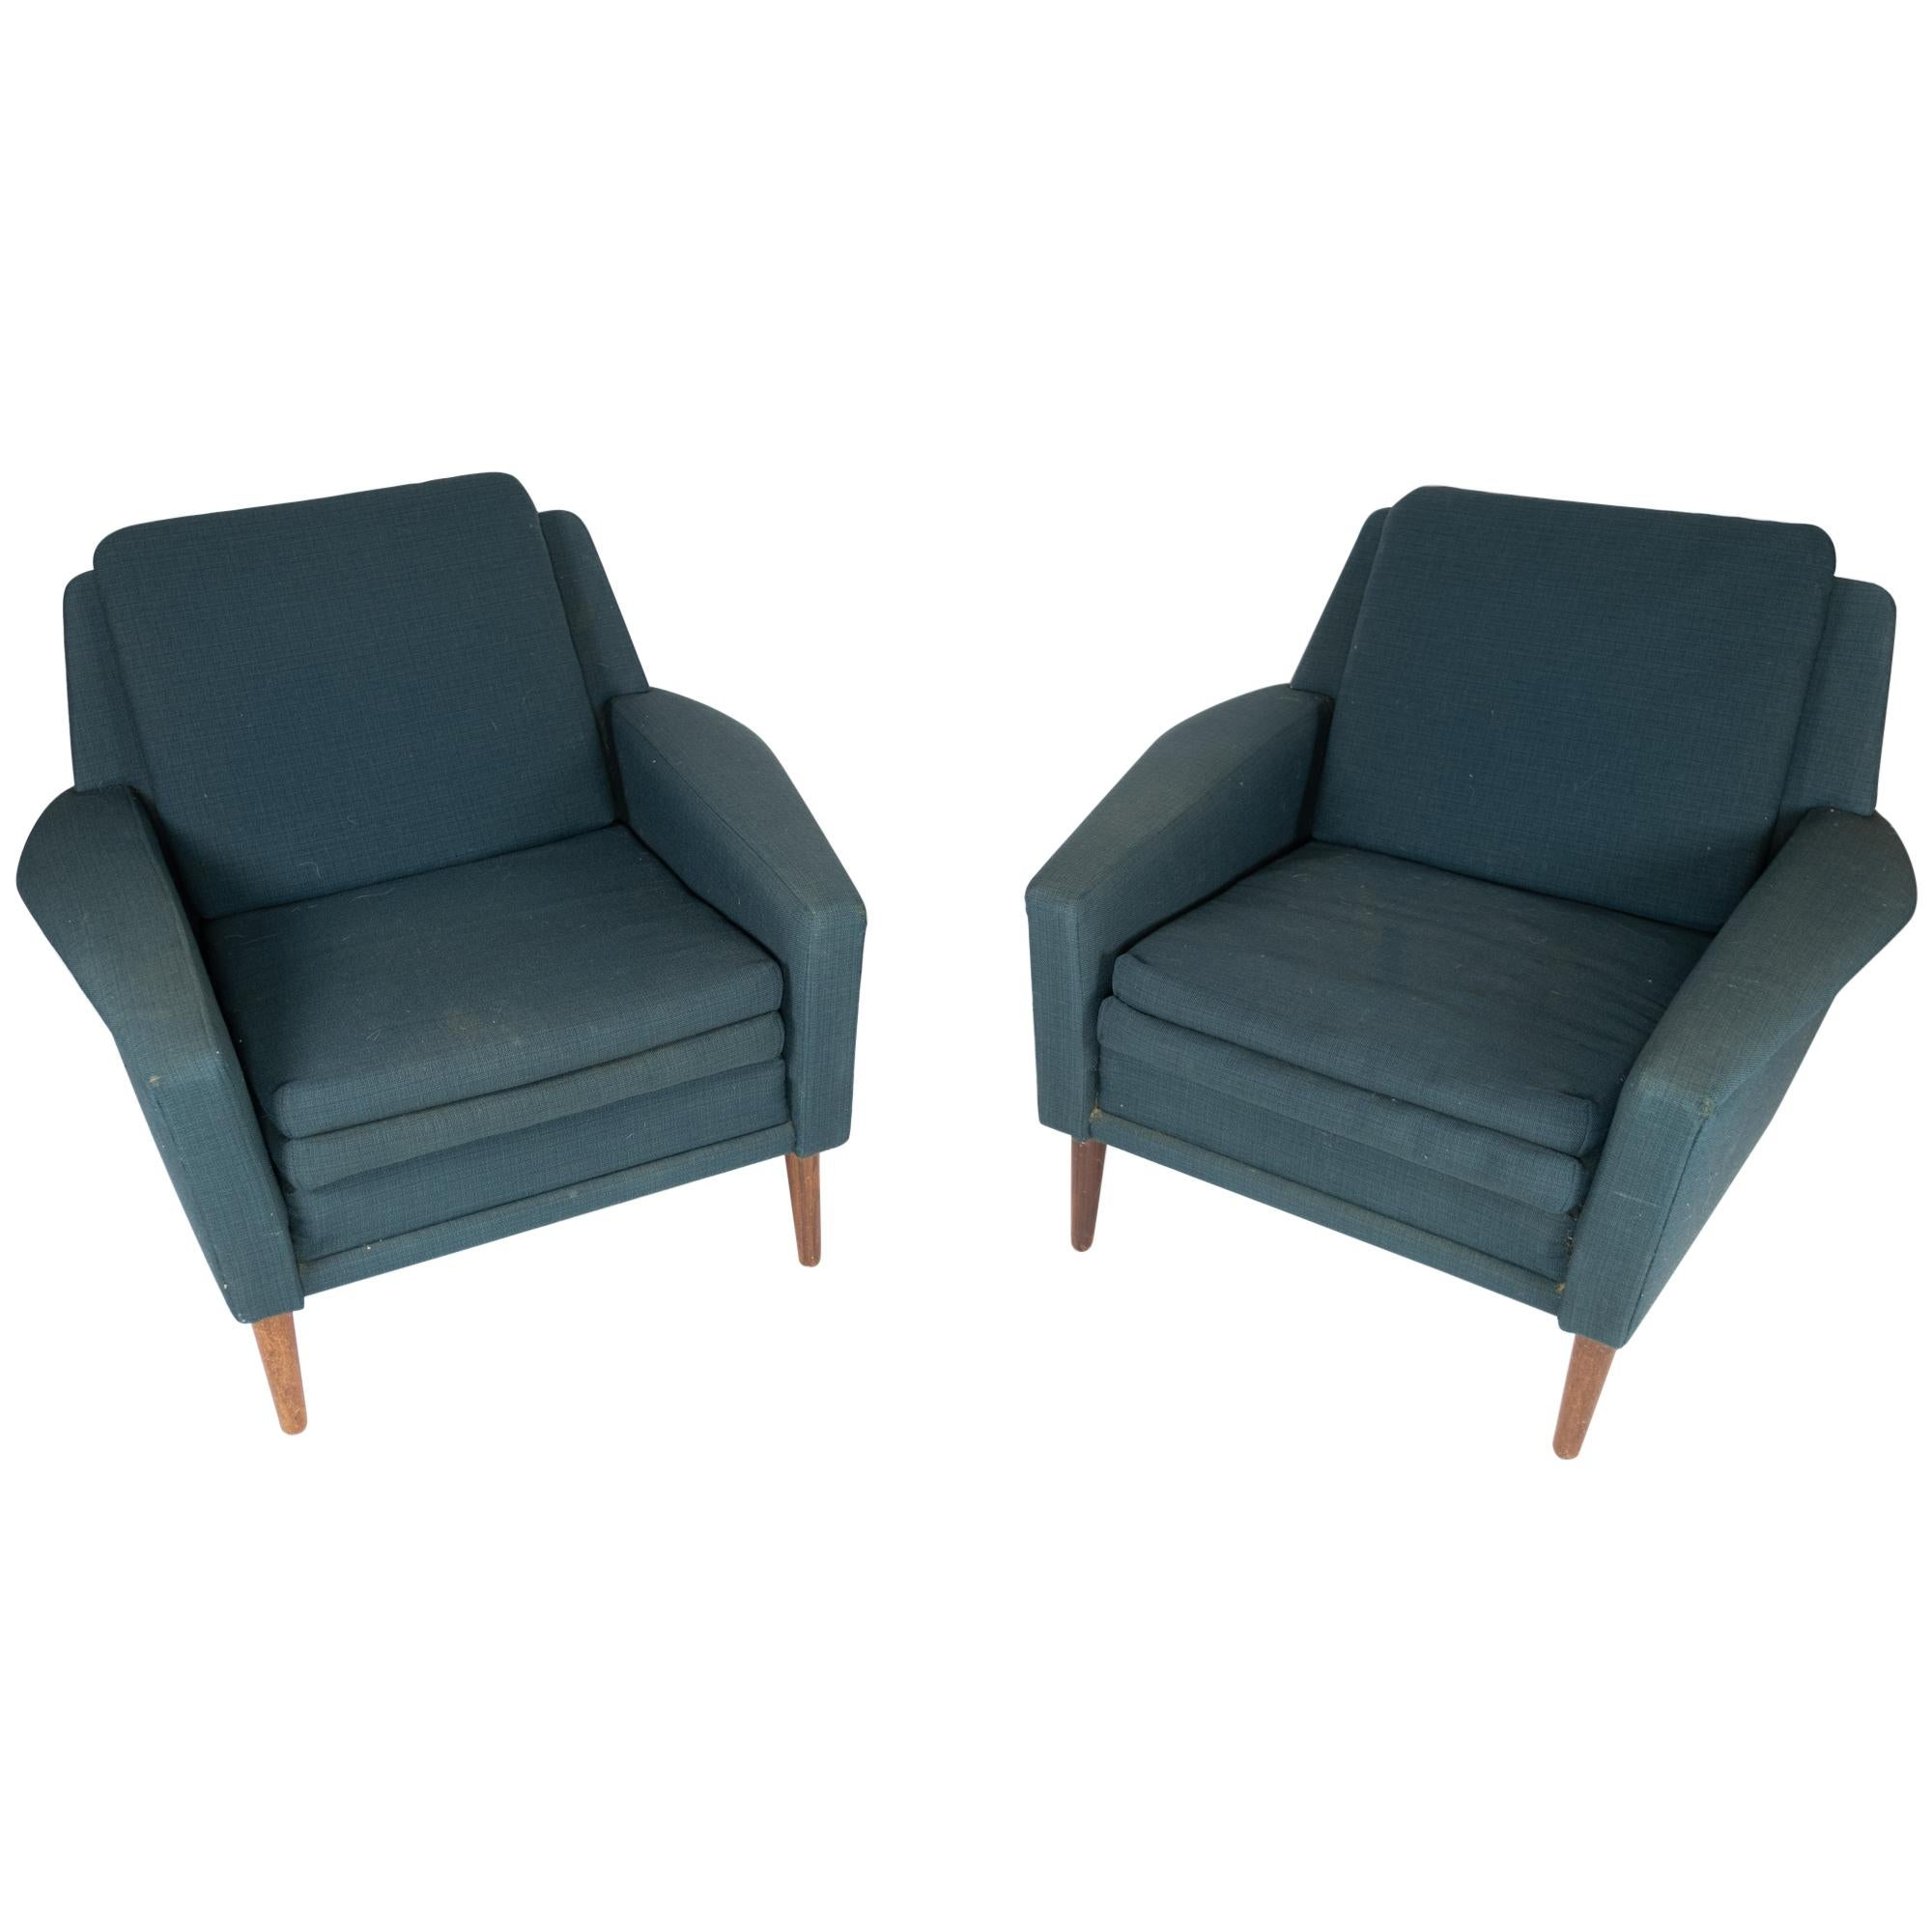 Set of Armchairs by Fritz Hansen from the 1960s